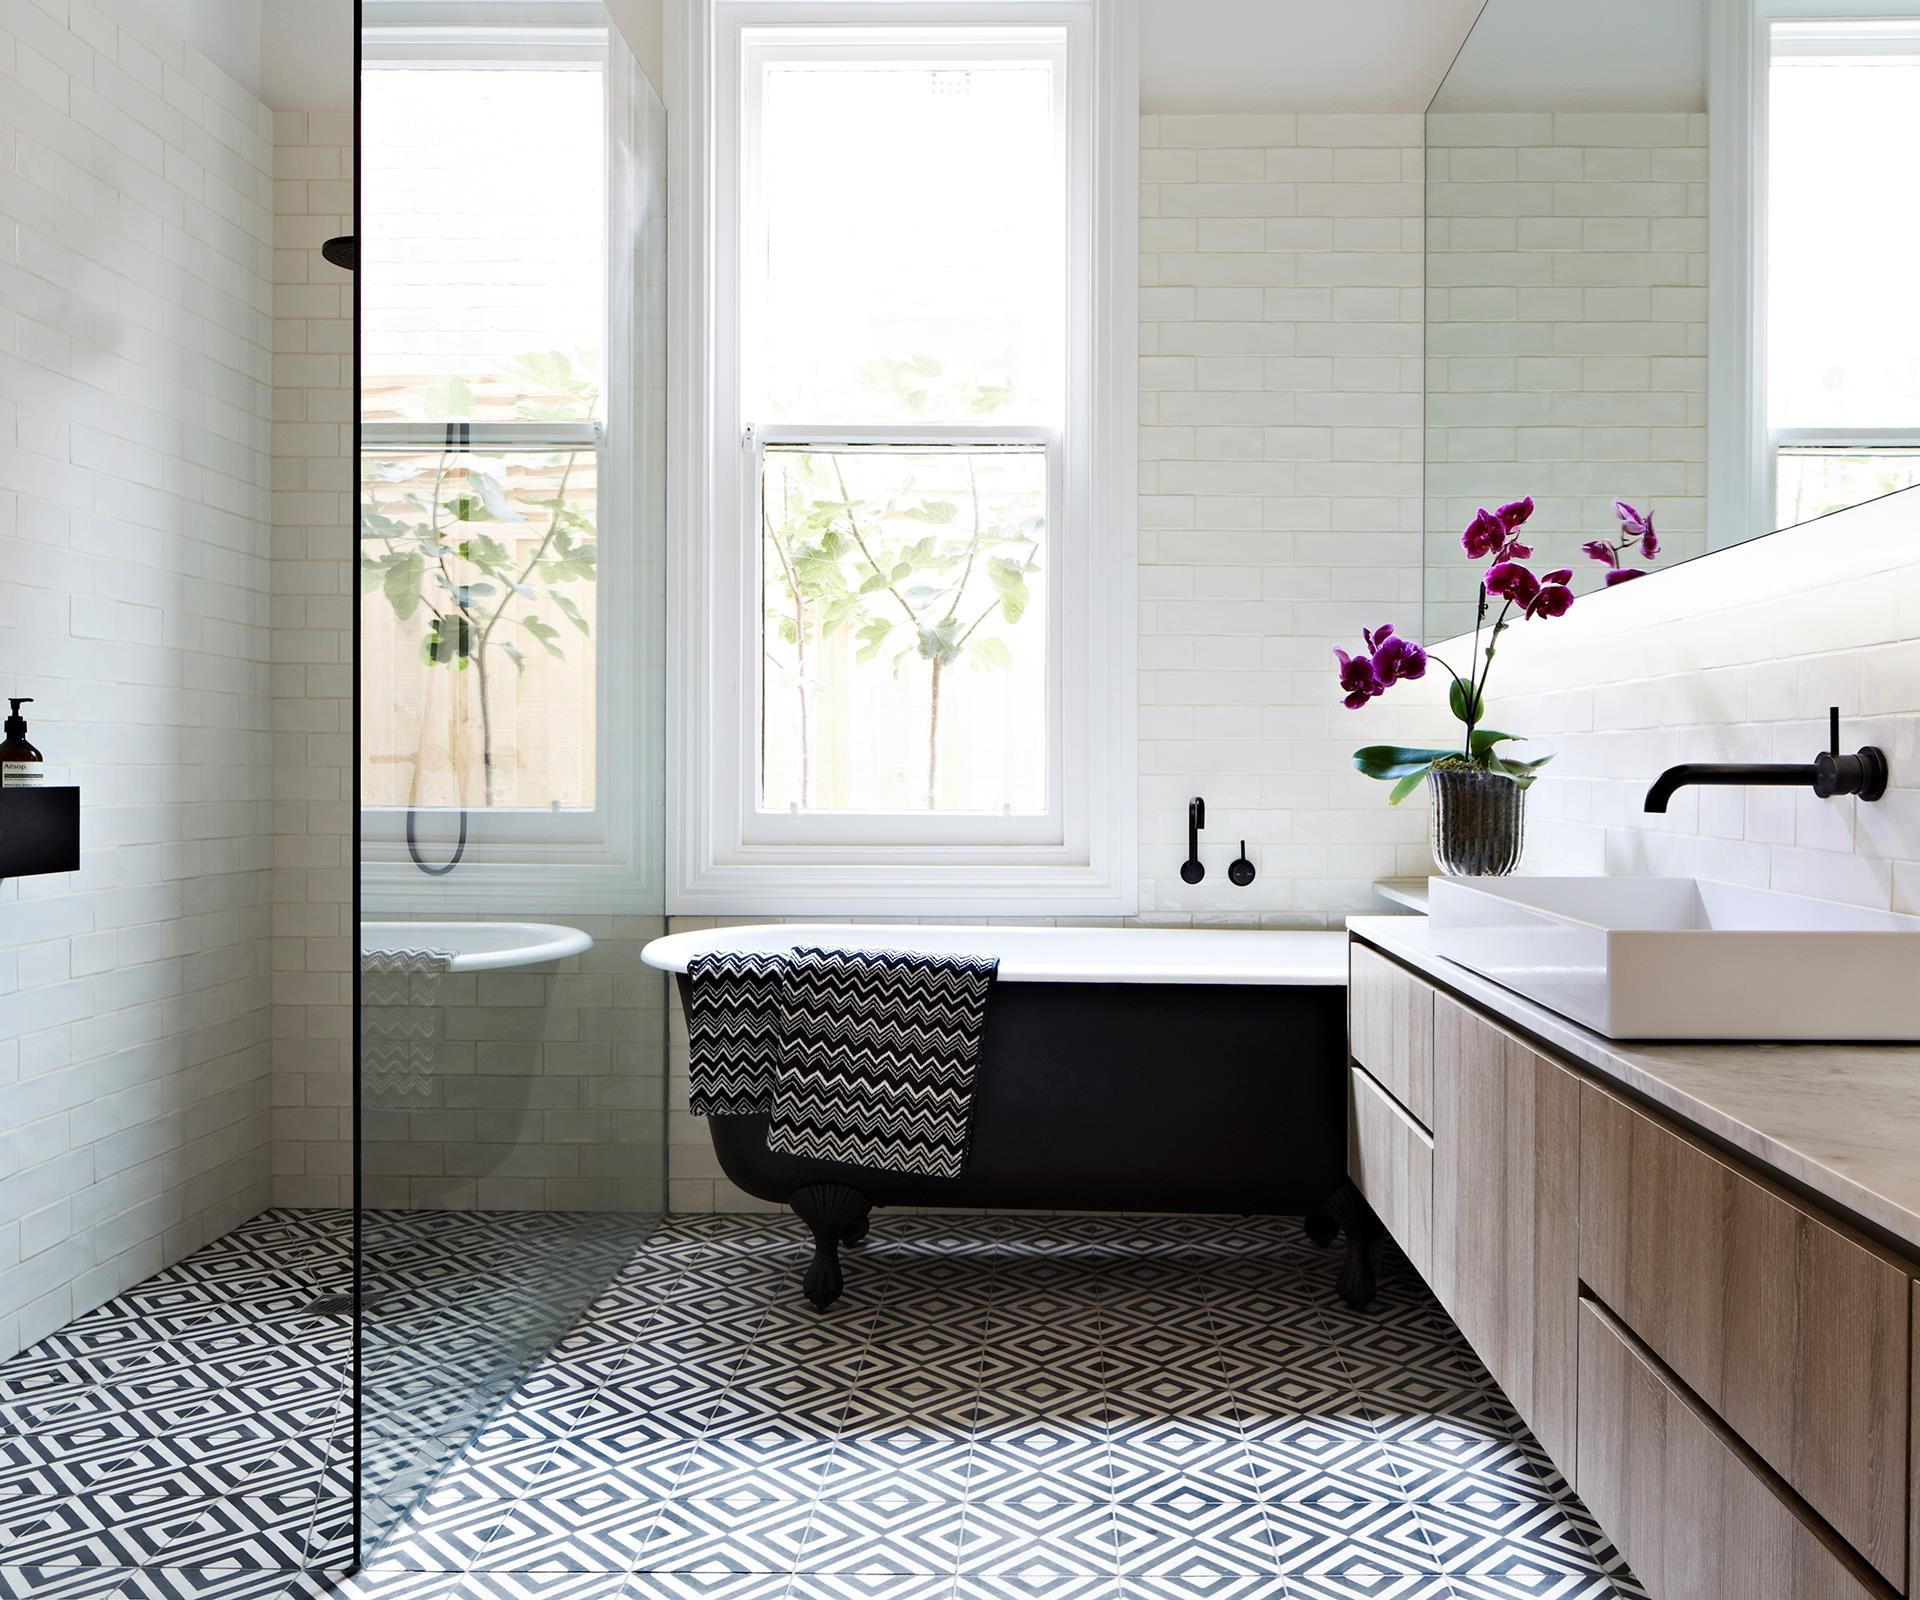 Bathroom profile: Jewel purpose | Floor patterns, Melbourne and Diamond